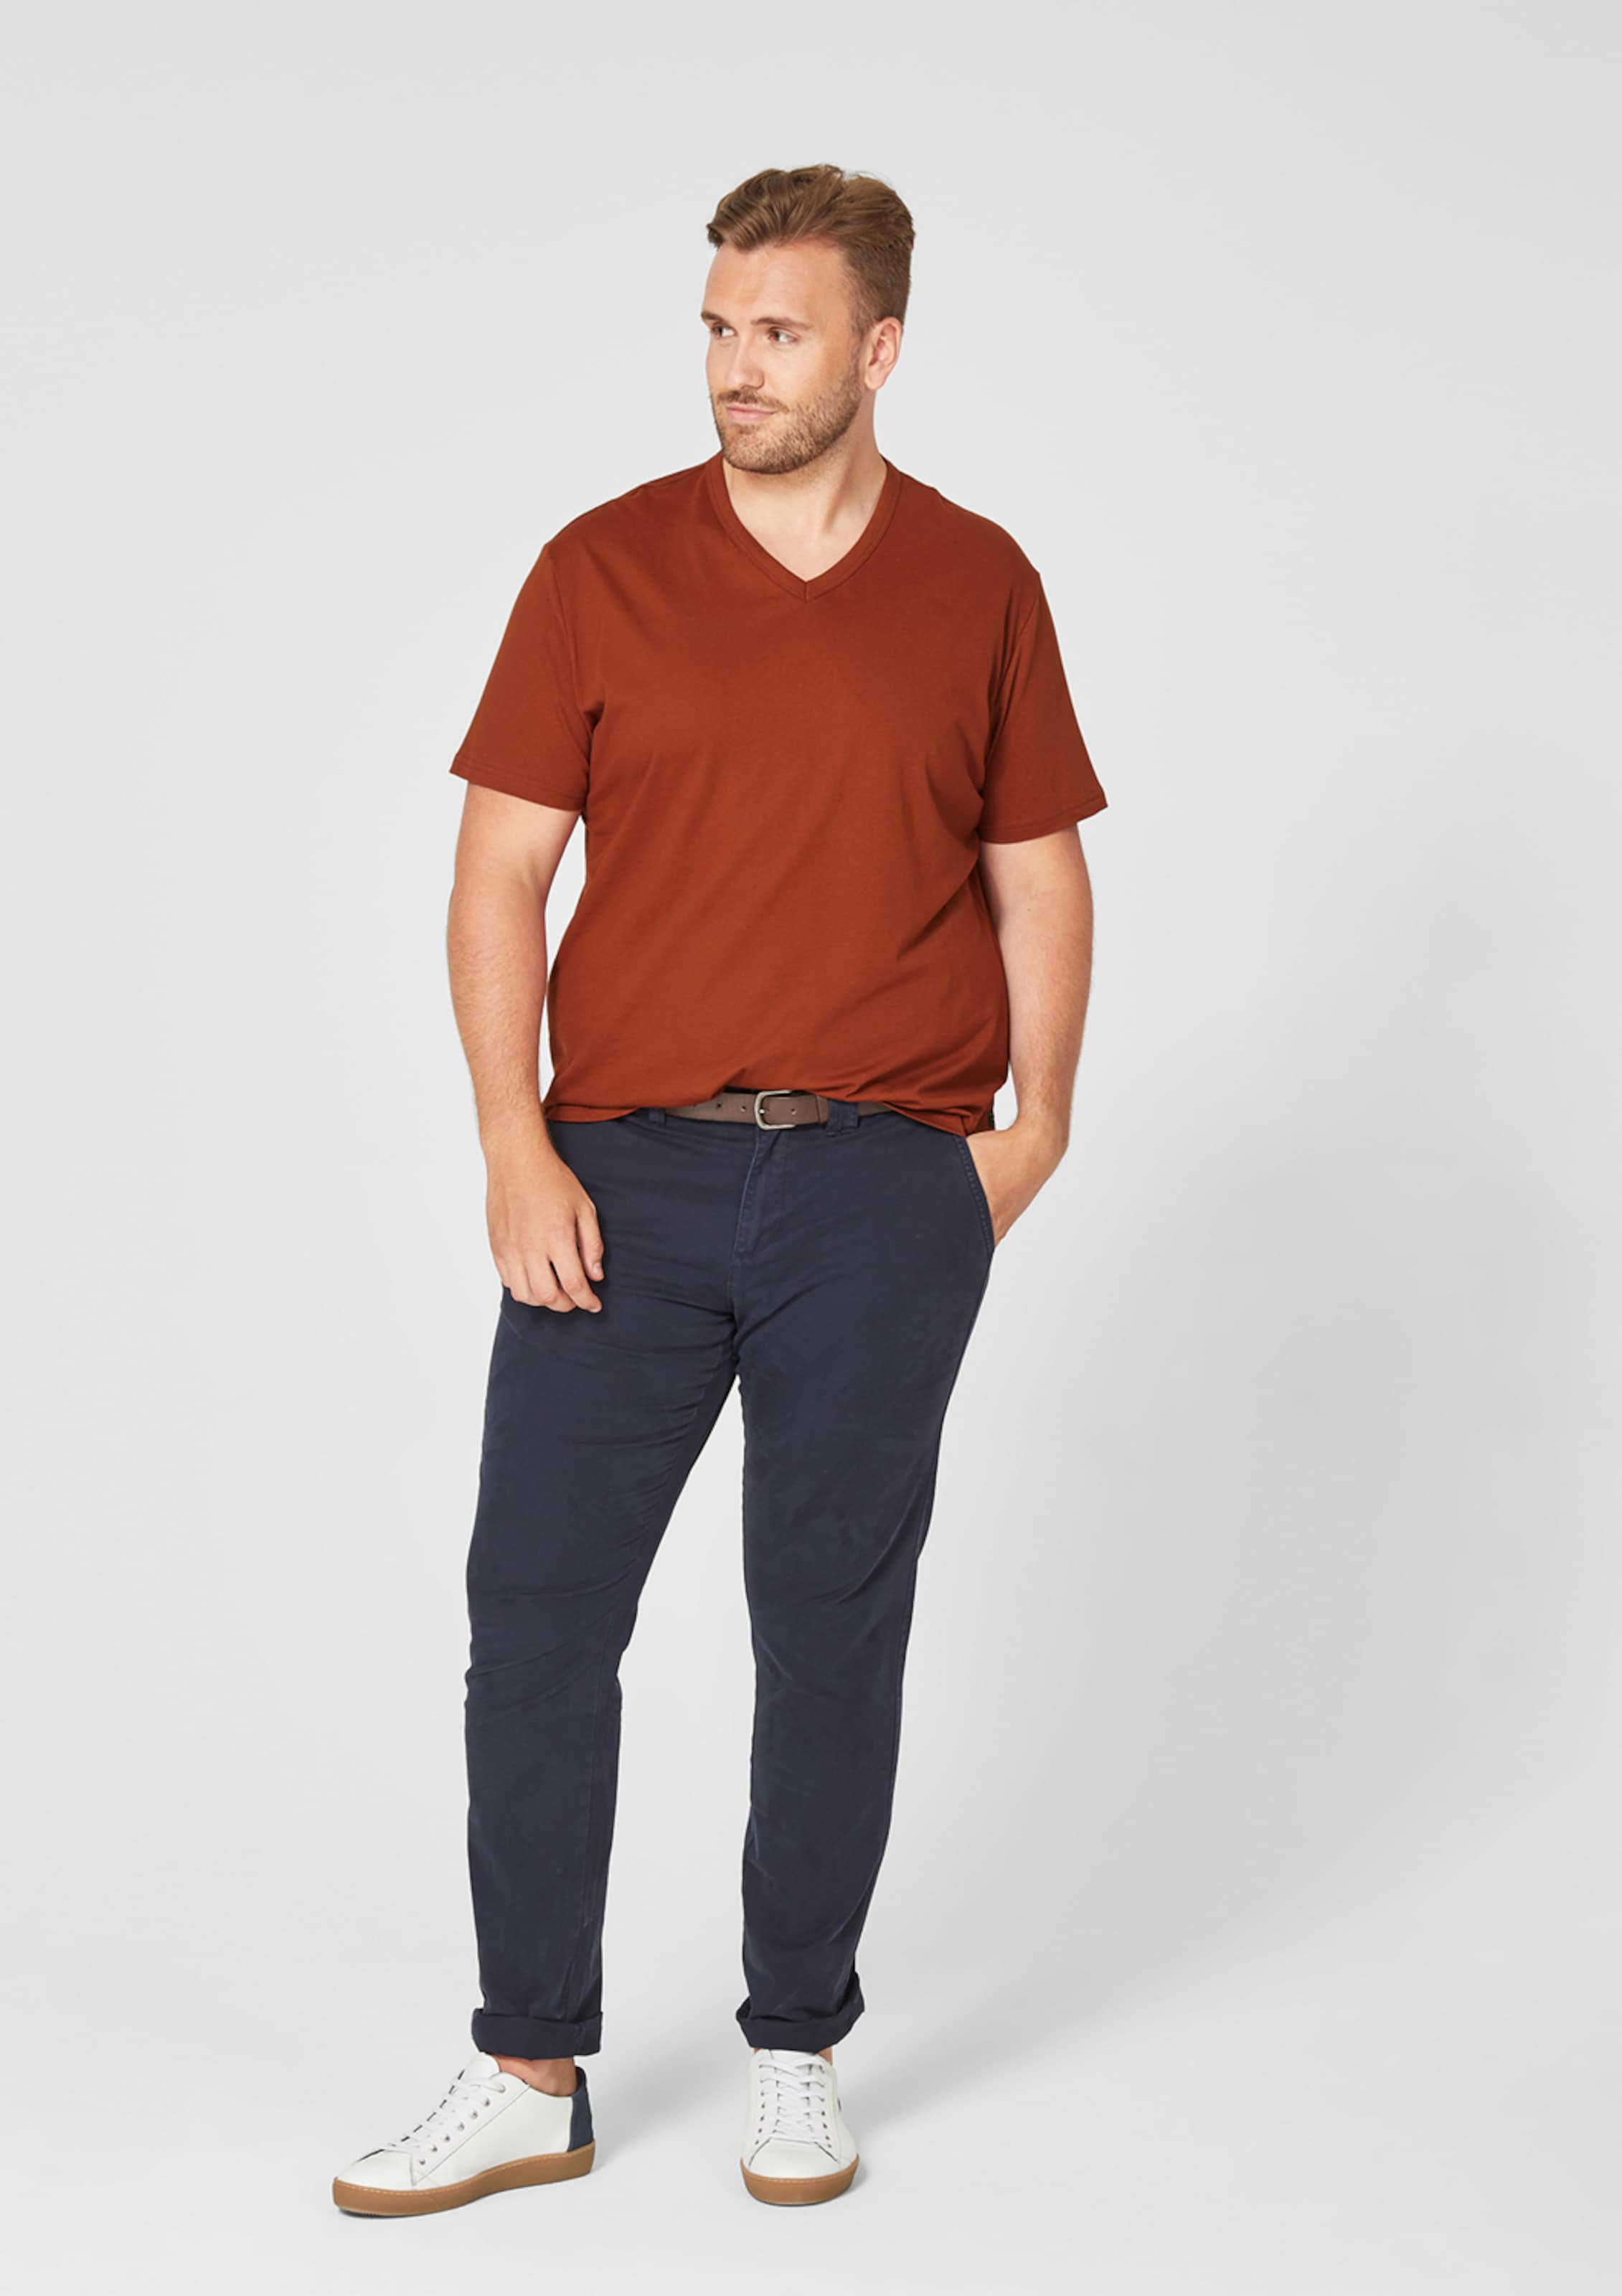 oliver shirt S neck Orange In Red Label V Omvw8Nn0